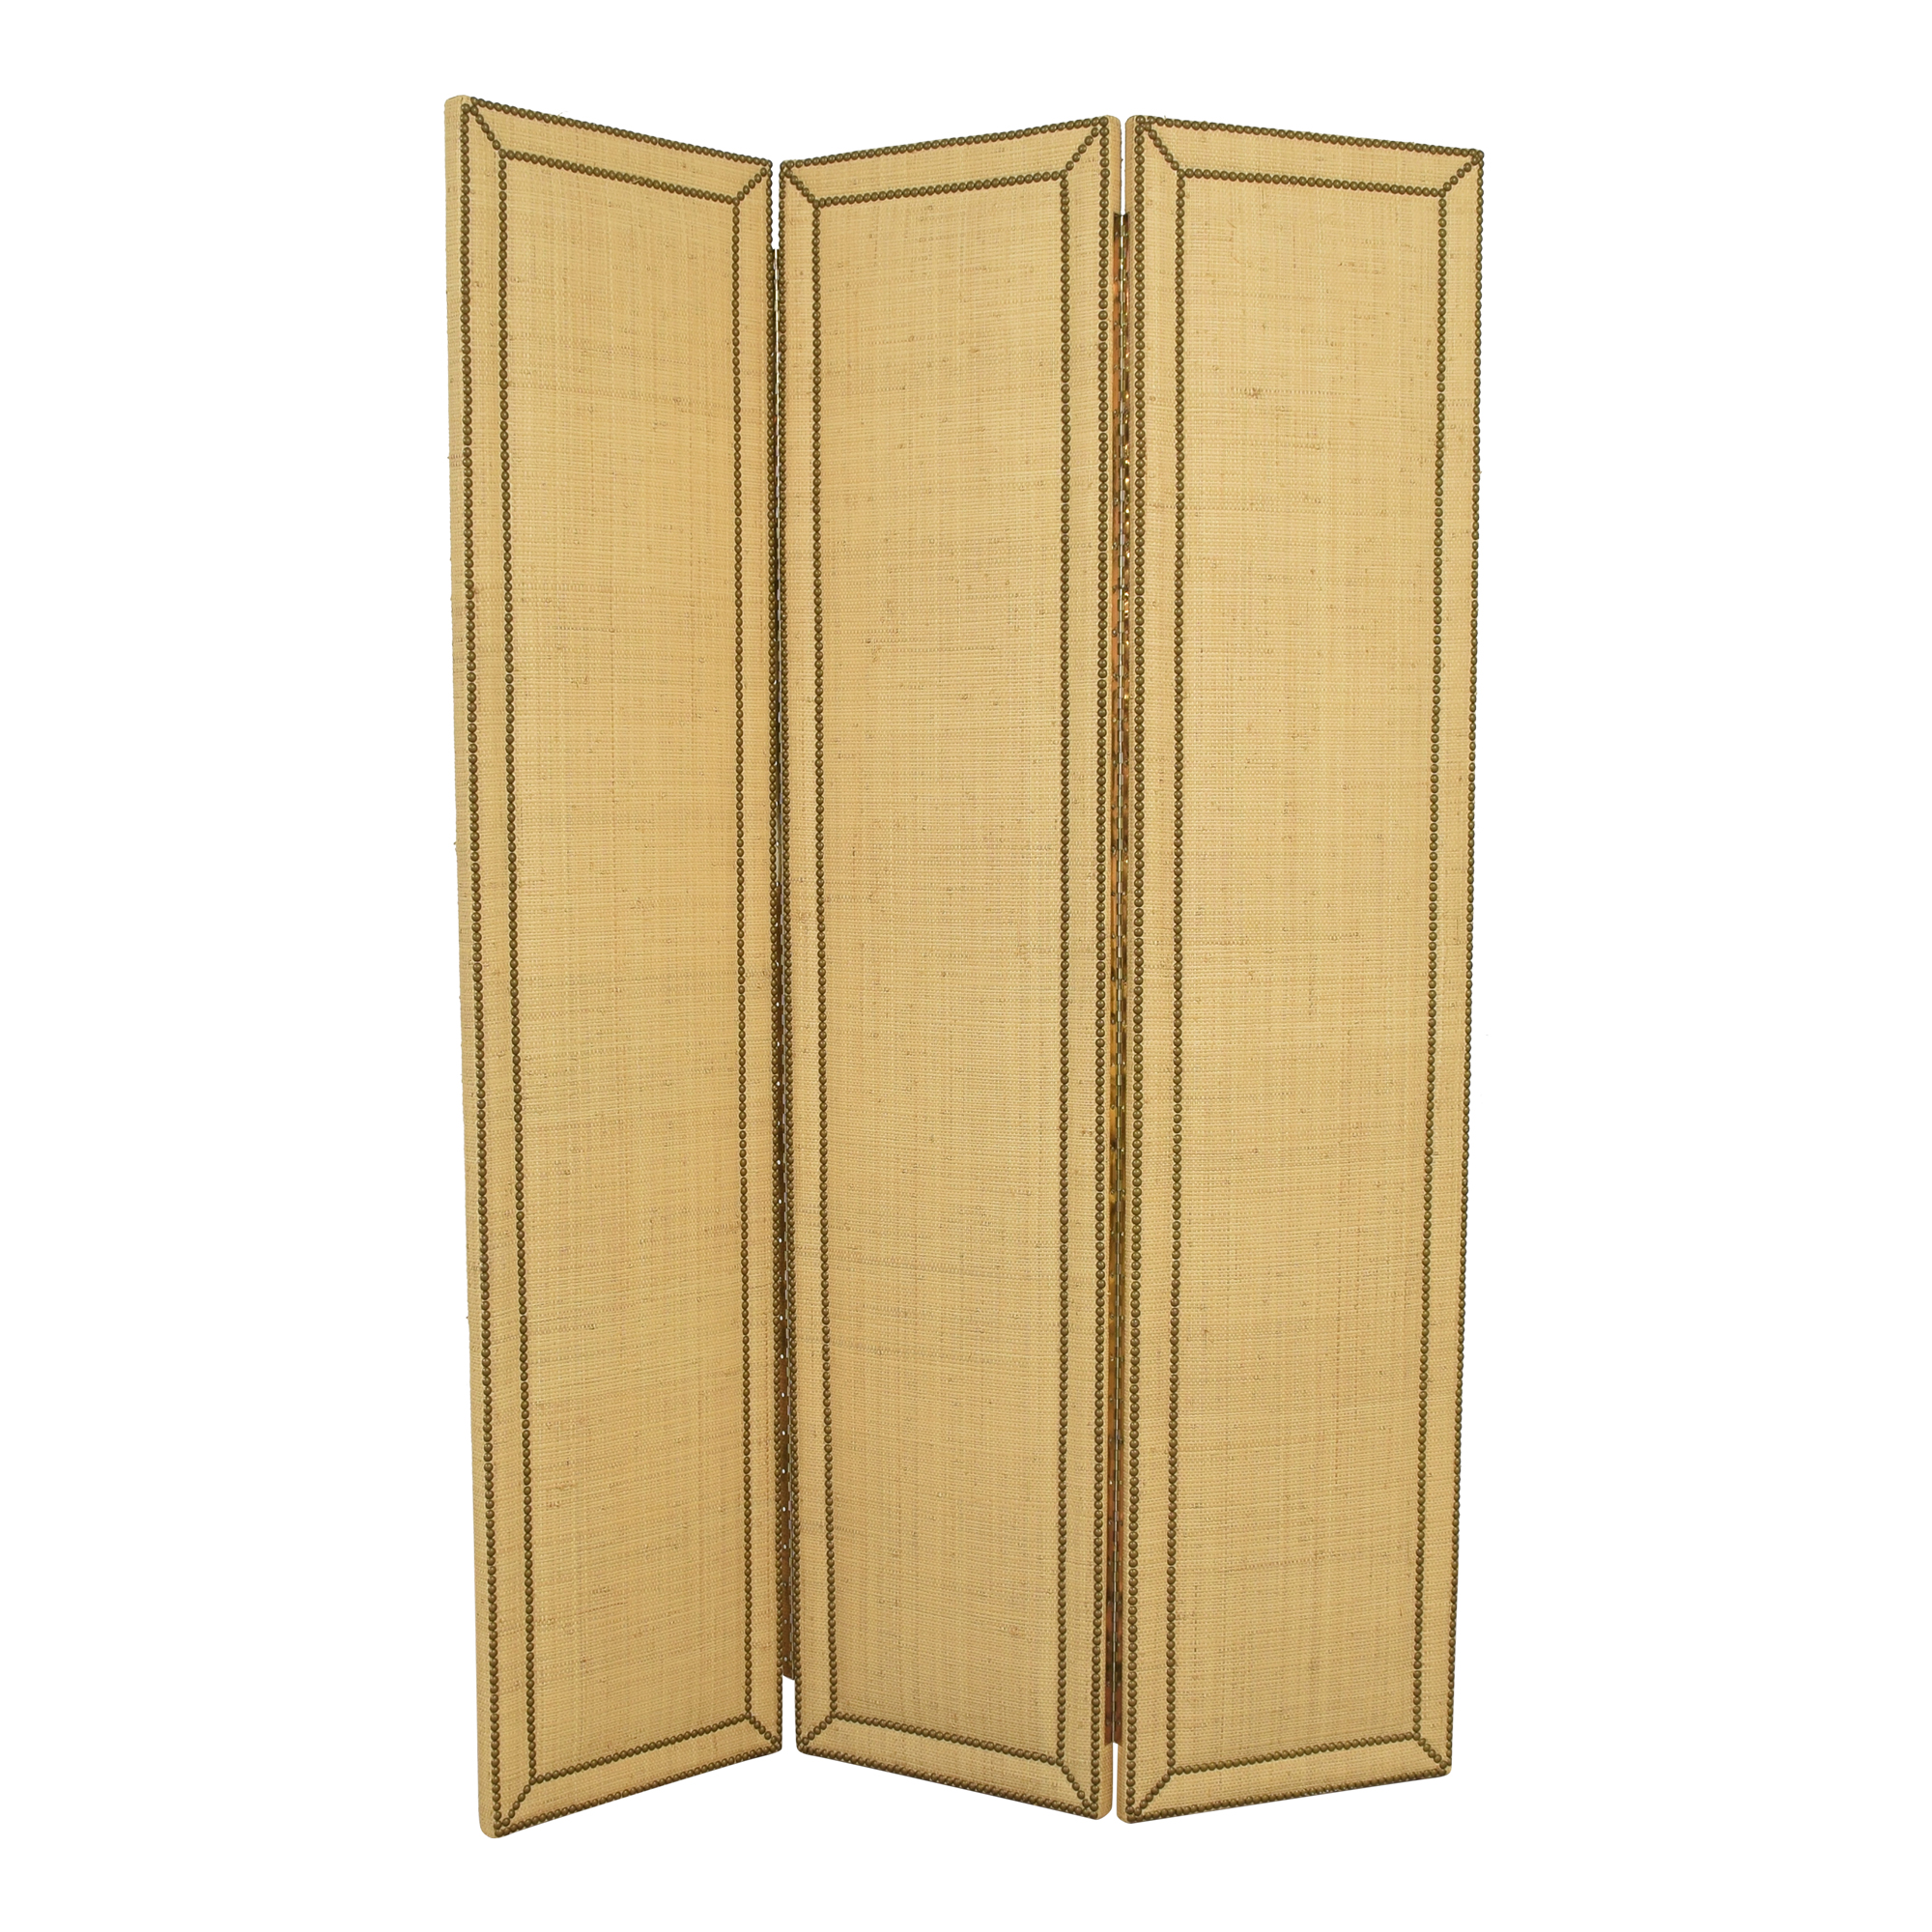 Custom Three Panel Room Divider ma